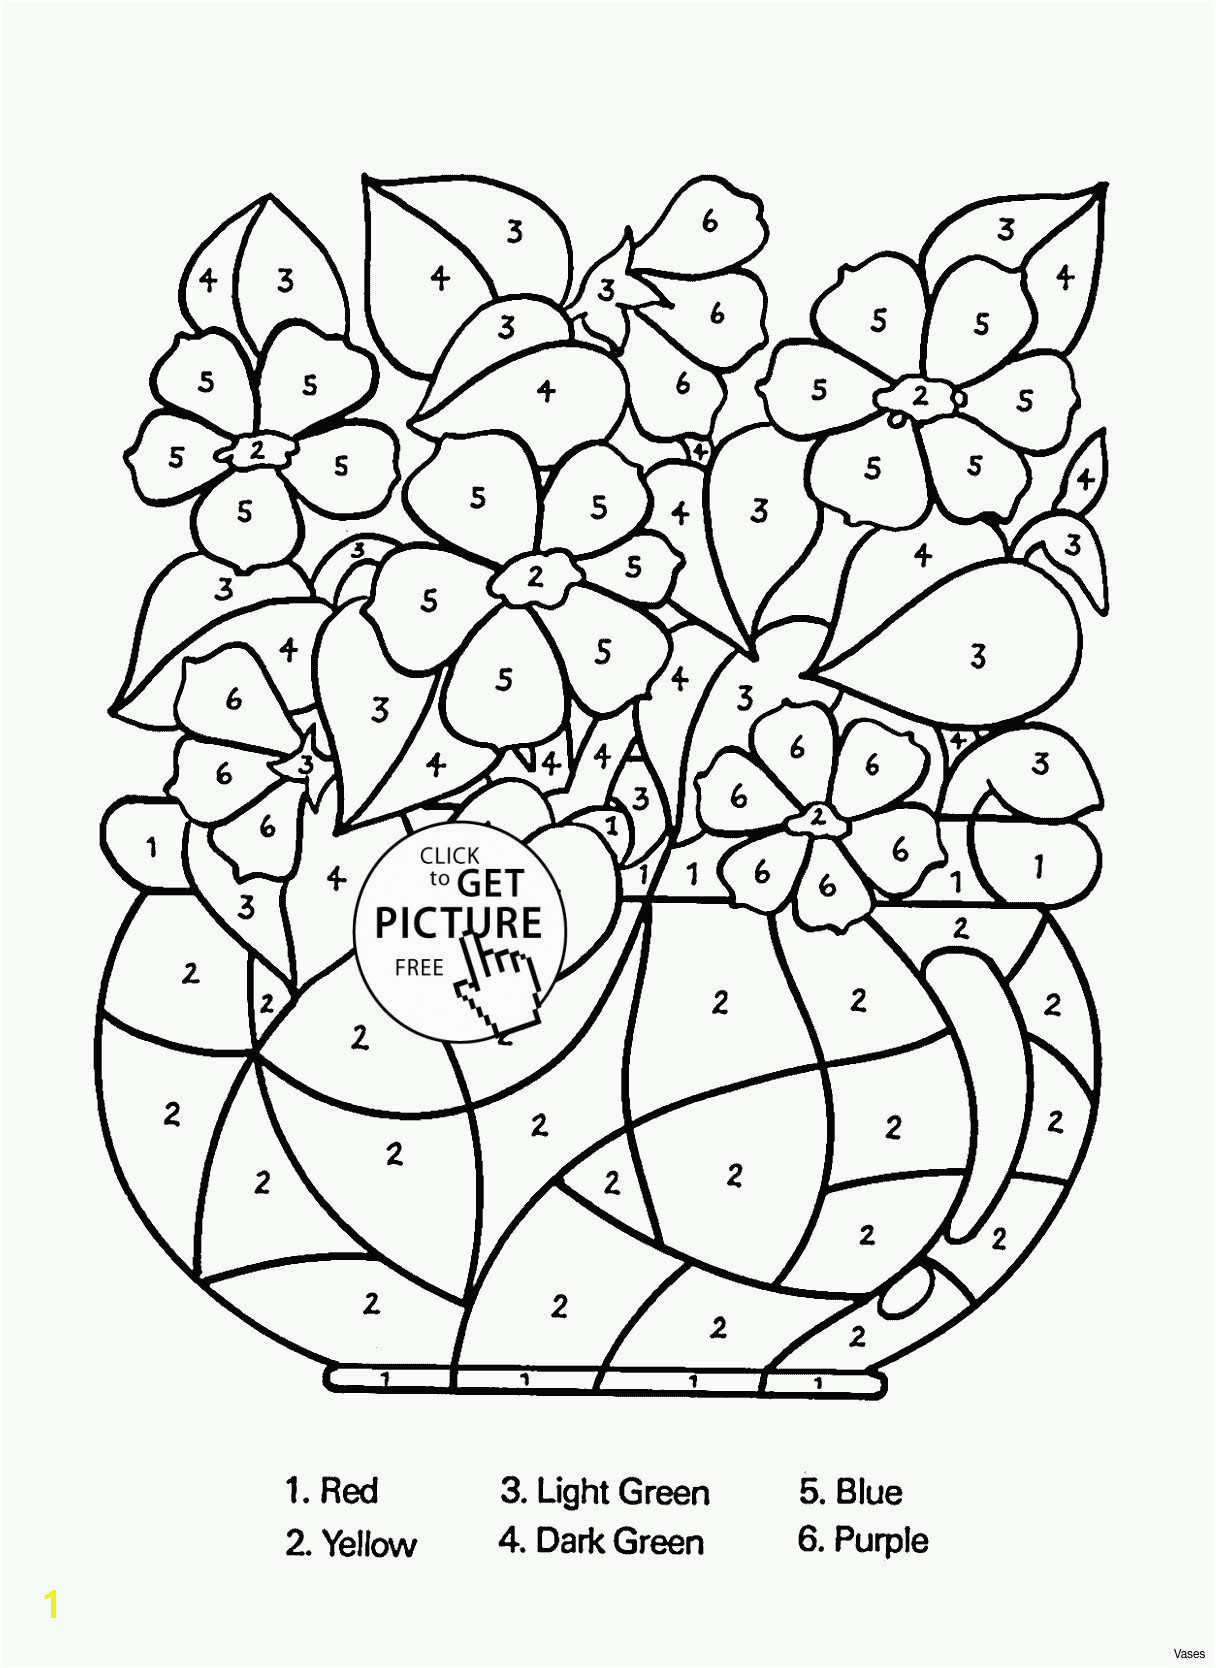 Microbiology Coloring Pages Cornucopia Coloring Pages to Print Unique Print Coloring Pages